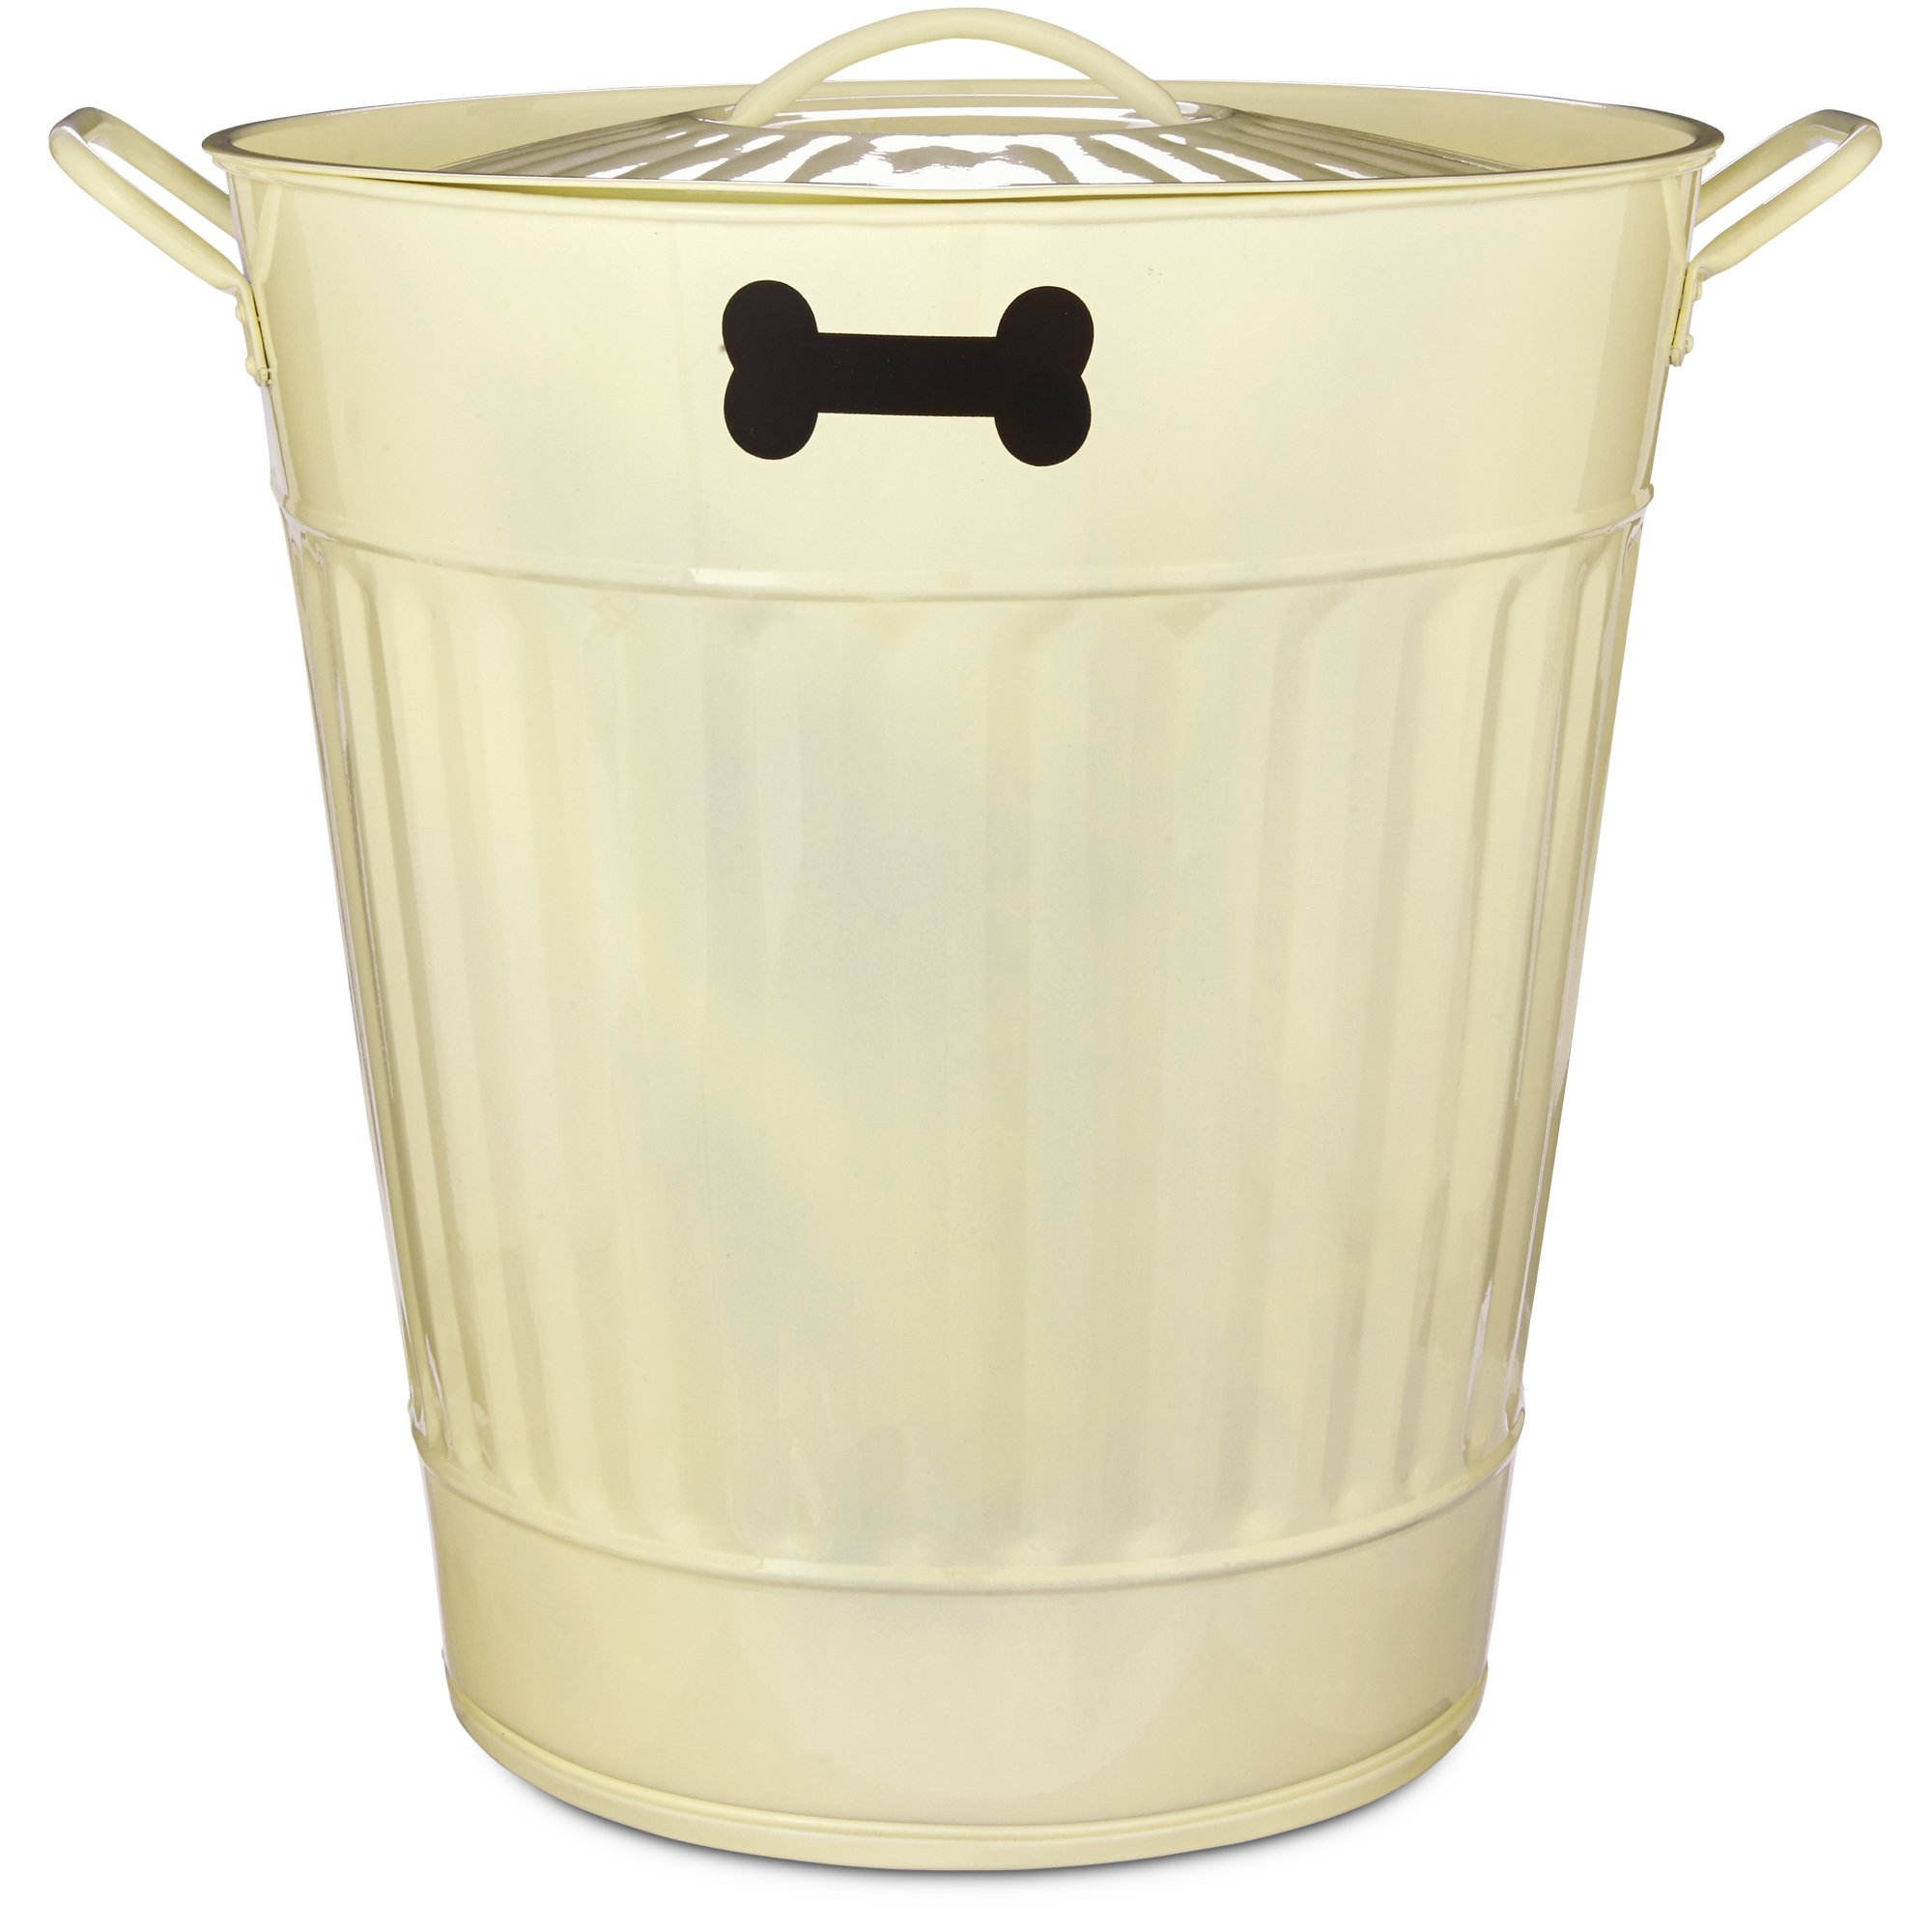 You & Me Pet Food Storage Bin in Cream